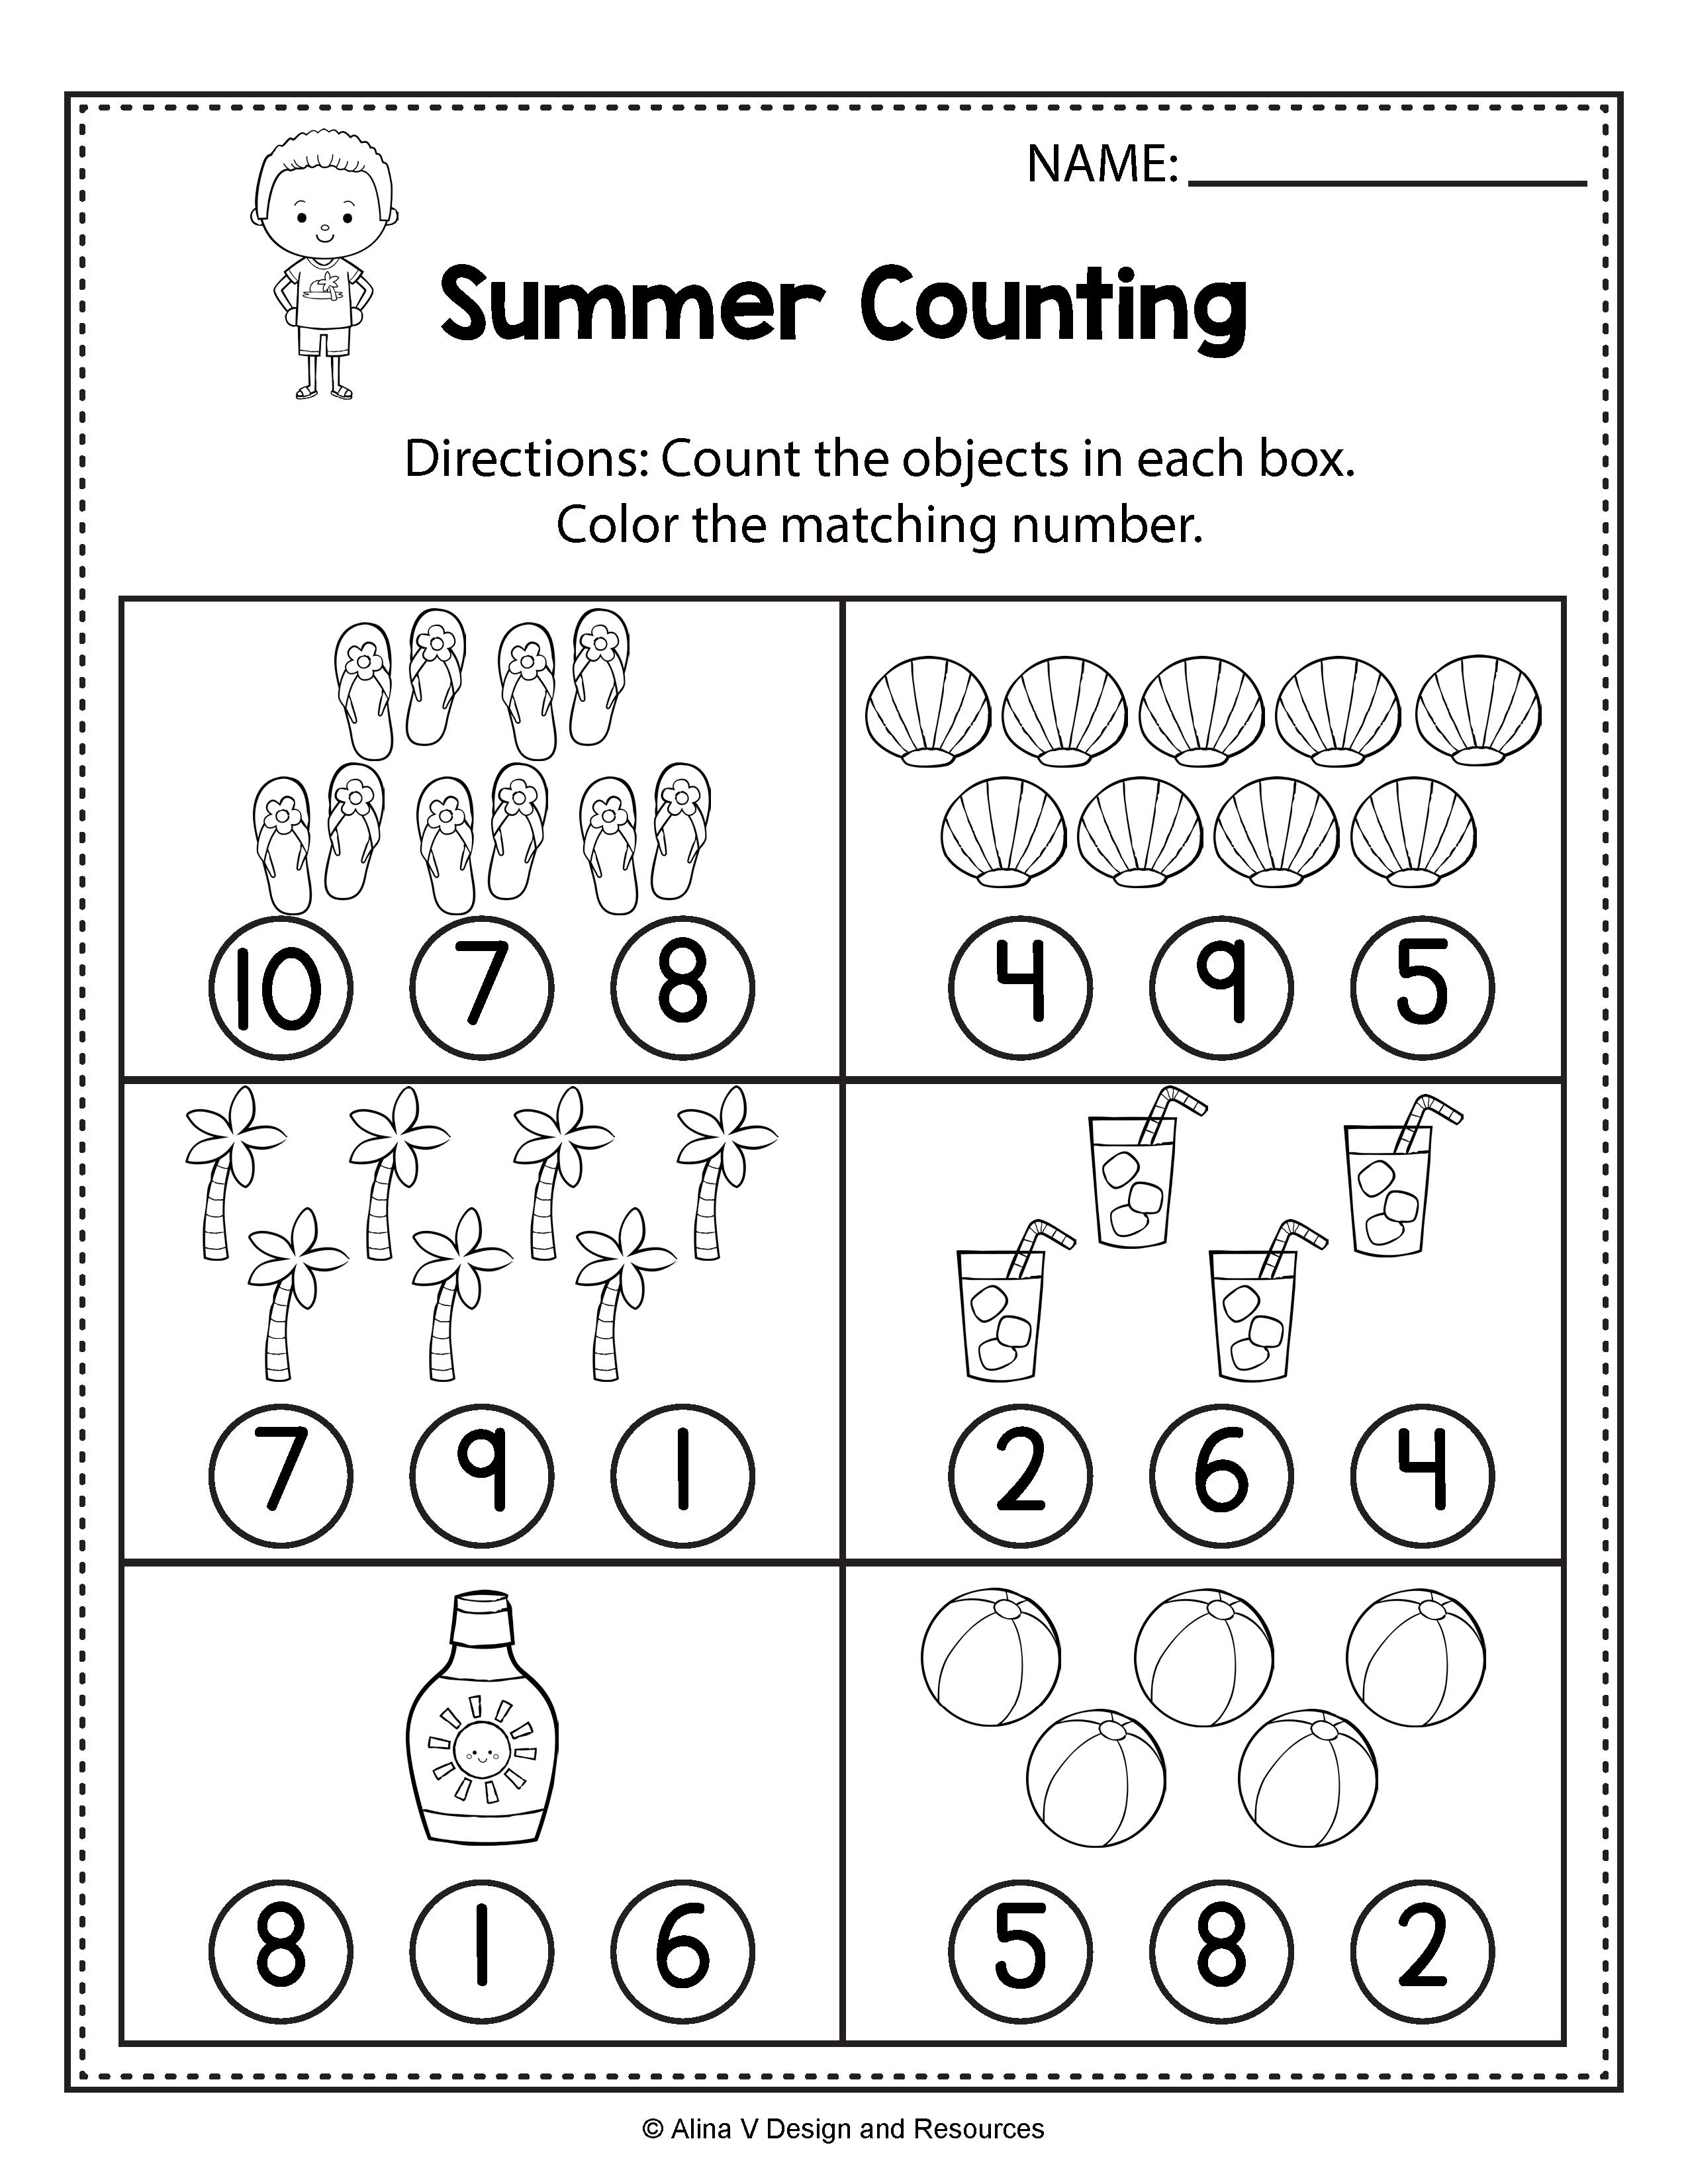 Counting Worksheets - Summer Math Worksheets and activities for preschool [ 3300 x 2550 Pixel ]